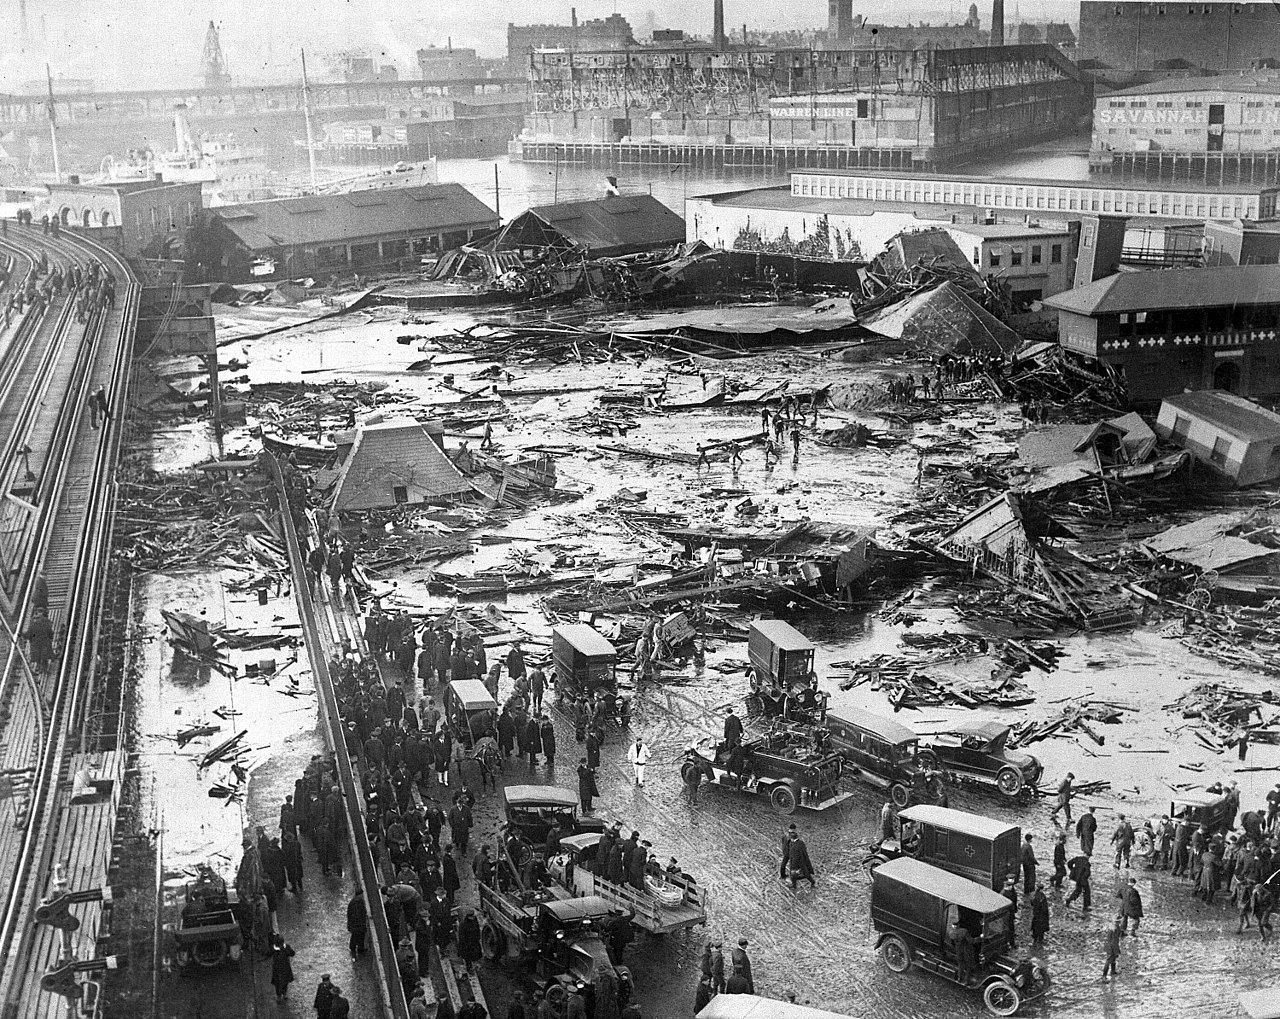 January 15 - A wave of molasses released from an exploding storage tank sweeps through Boston, Massachusetts, killing 33 and injuring 150.